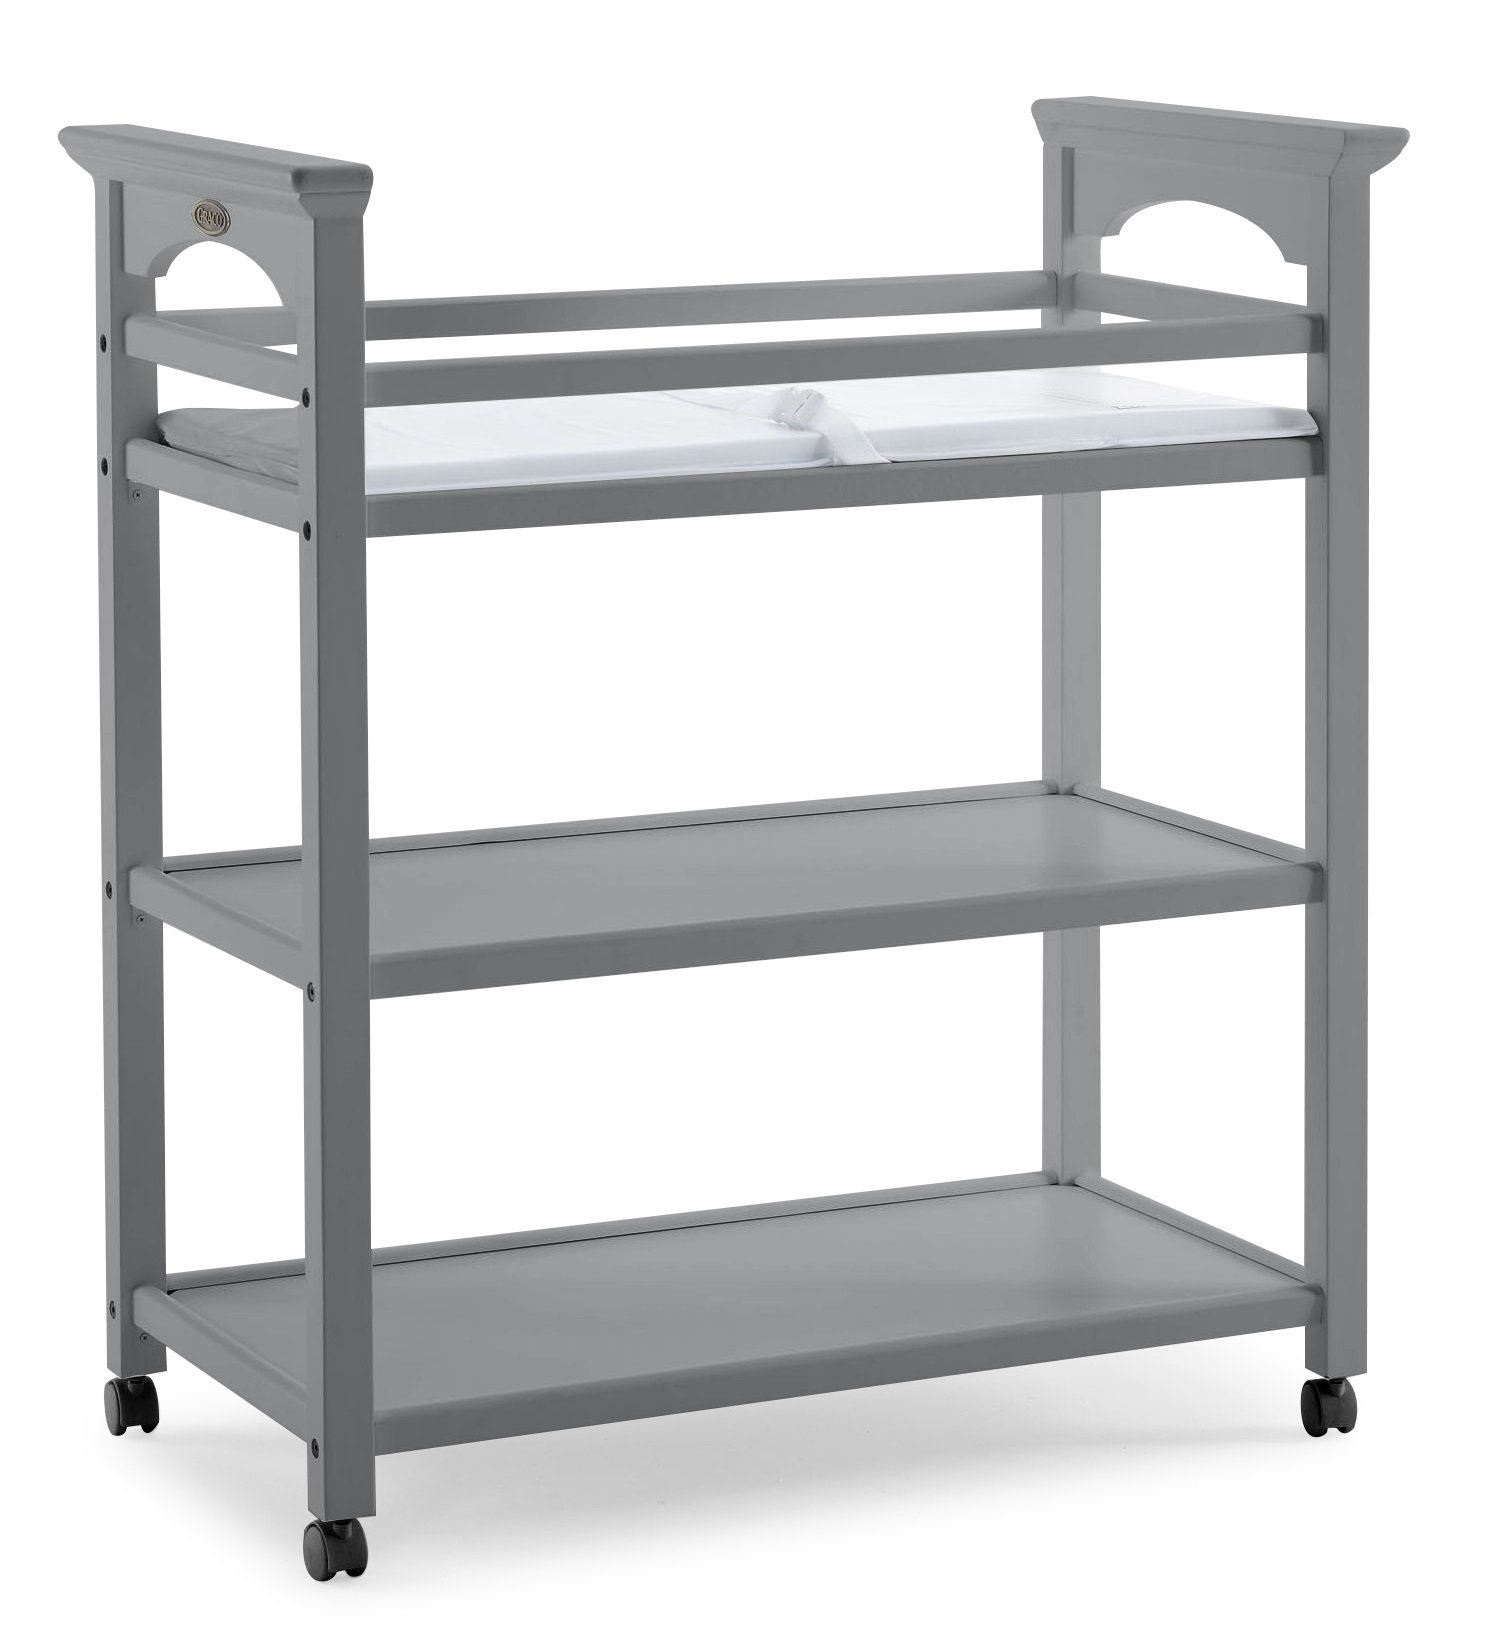 Graco Lauren Changing Table with Water-Resistant Change Pad and Safety Strap, Pebble Gray, Multi Open Storage Nursery Changing Table for Infants or Babies by Storkcraft